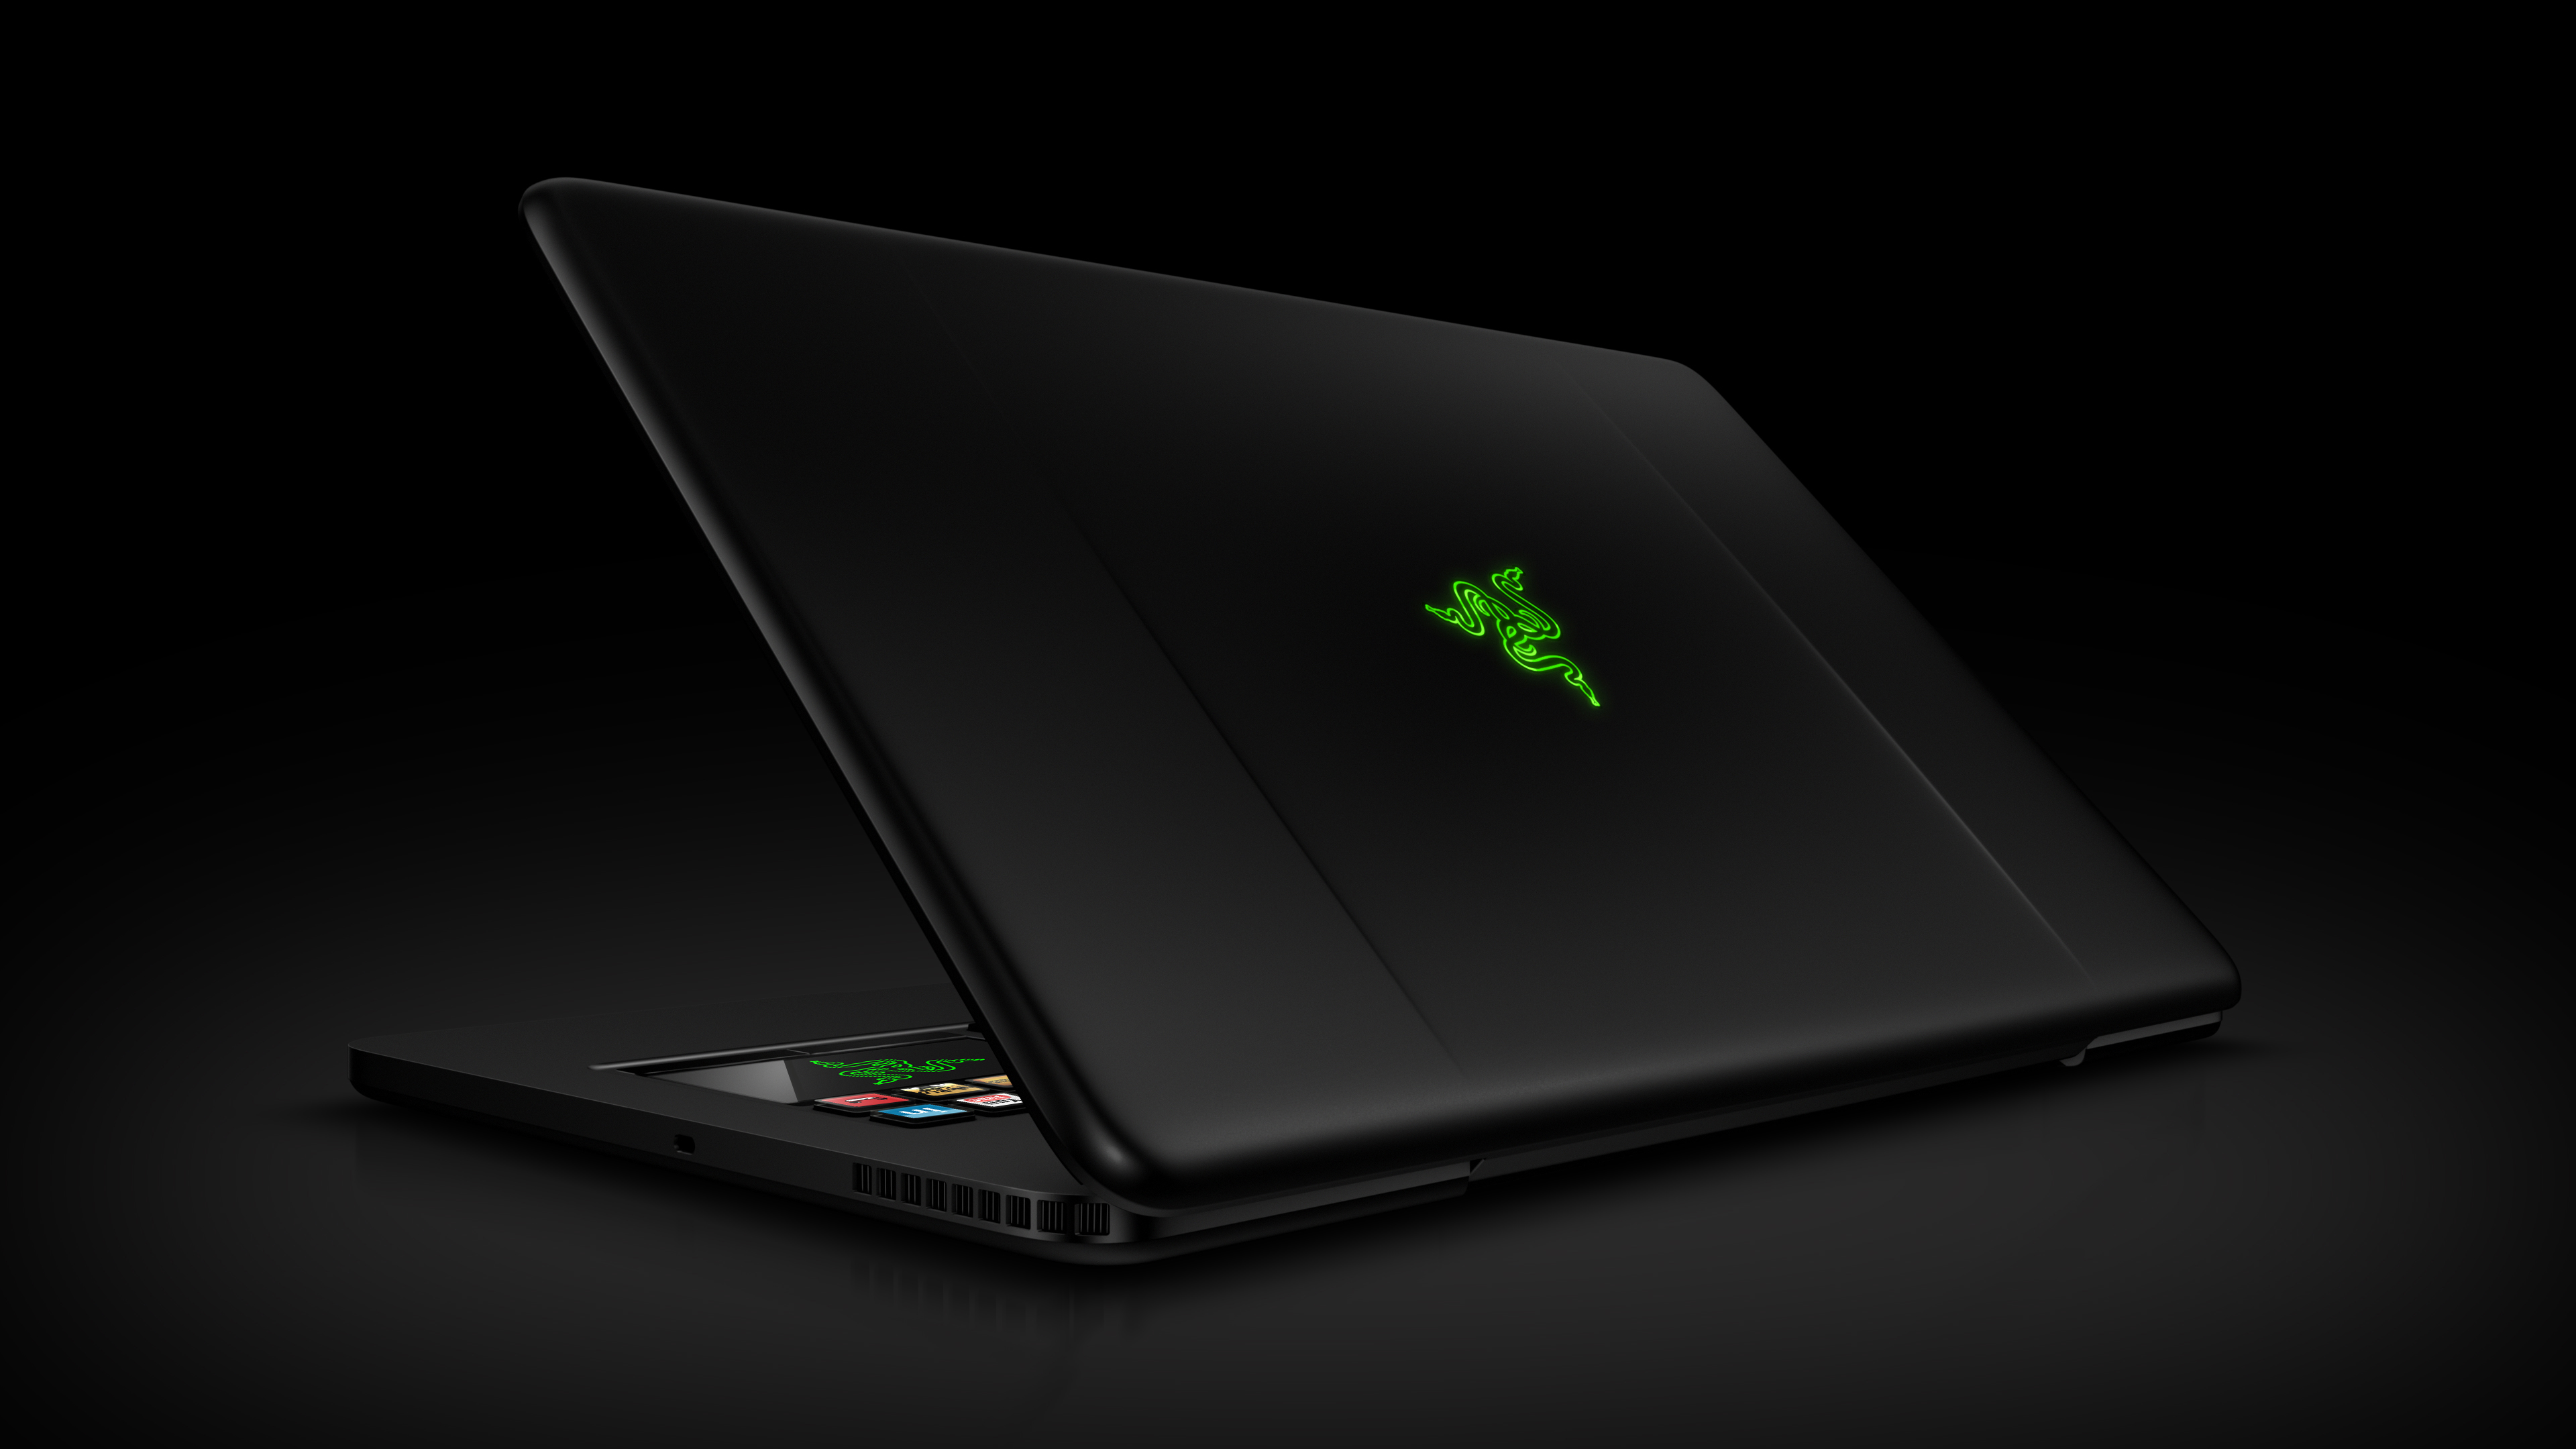 razer switchblade gaming laptop holy shit the keyboard. Black Bedroom Furniture Sets. Home Design Ideas